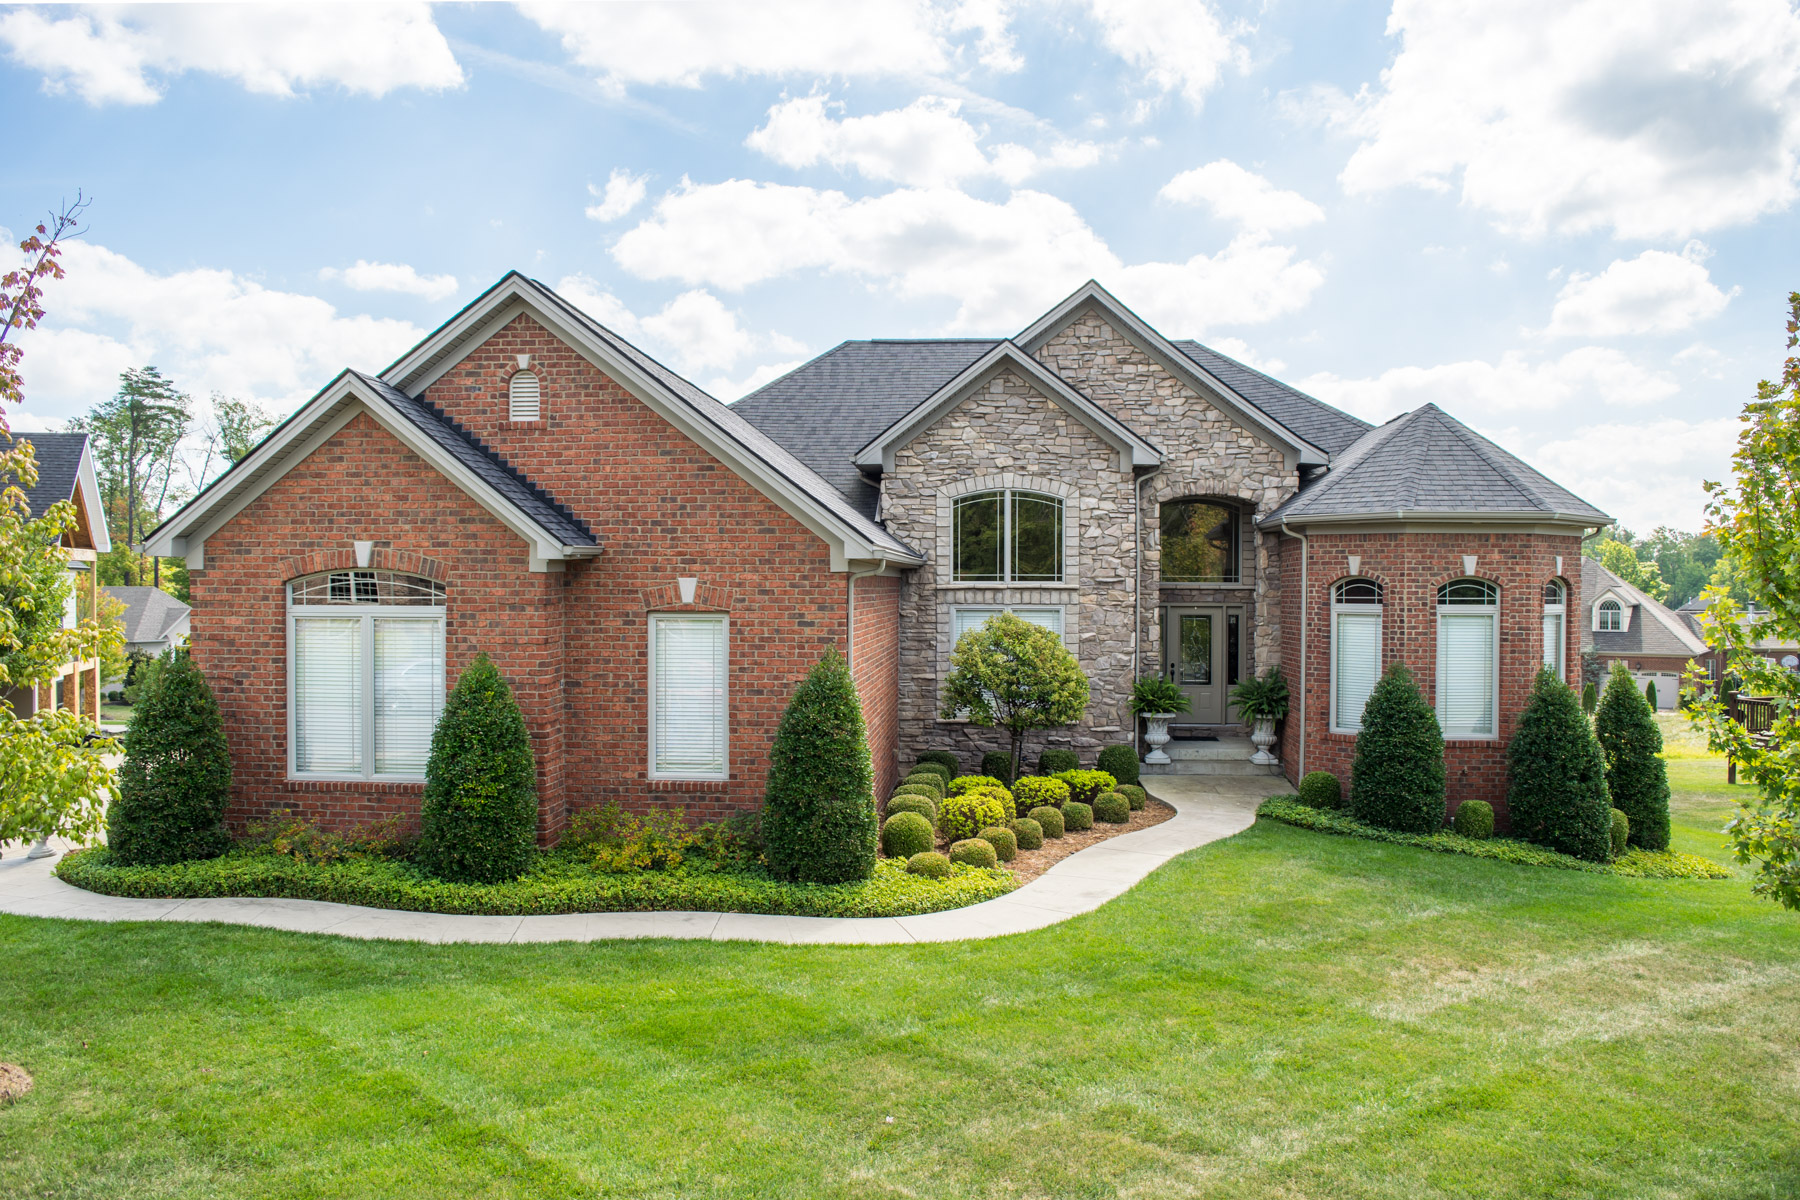 Single Family Home for Sale at 3579 Lafayette Pkwy Floyds Knobs, Indiana 47119 United States